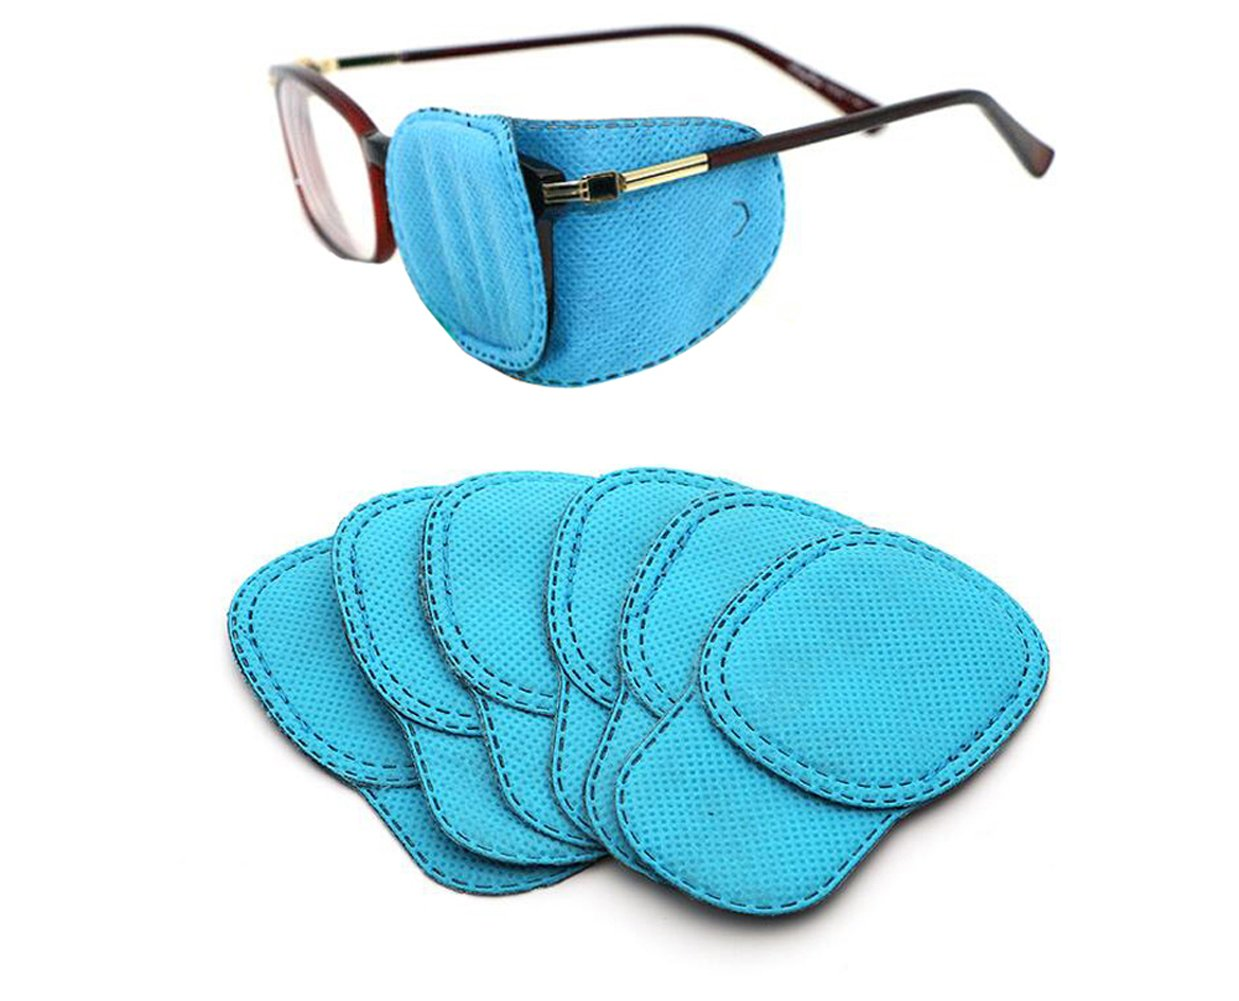 6PCS Blue Unisex Children Amblyopia Corrected Visual Acuity Recovery Eye Patch Mask Cover Pads for Lazy Eye/Amblyopia / Strabismus (L-4.13'' x 1.96'') Upstore